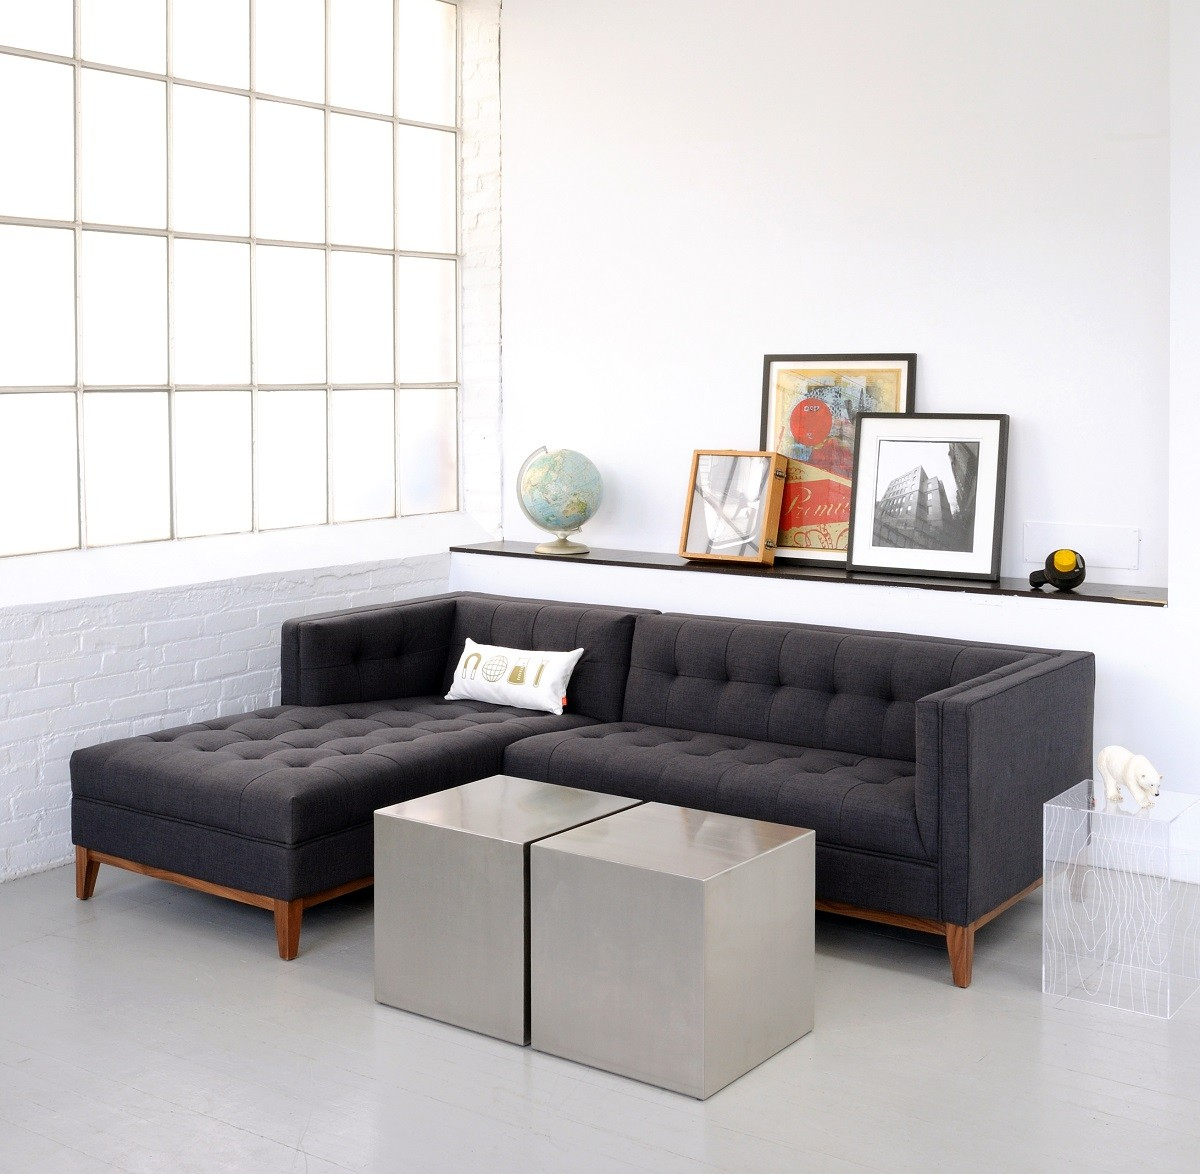 Box Type Sofa Designs: The Best Apartment Sectional Sofas Solving Function And